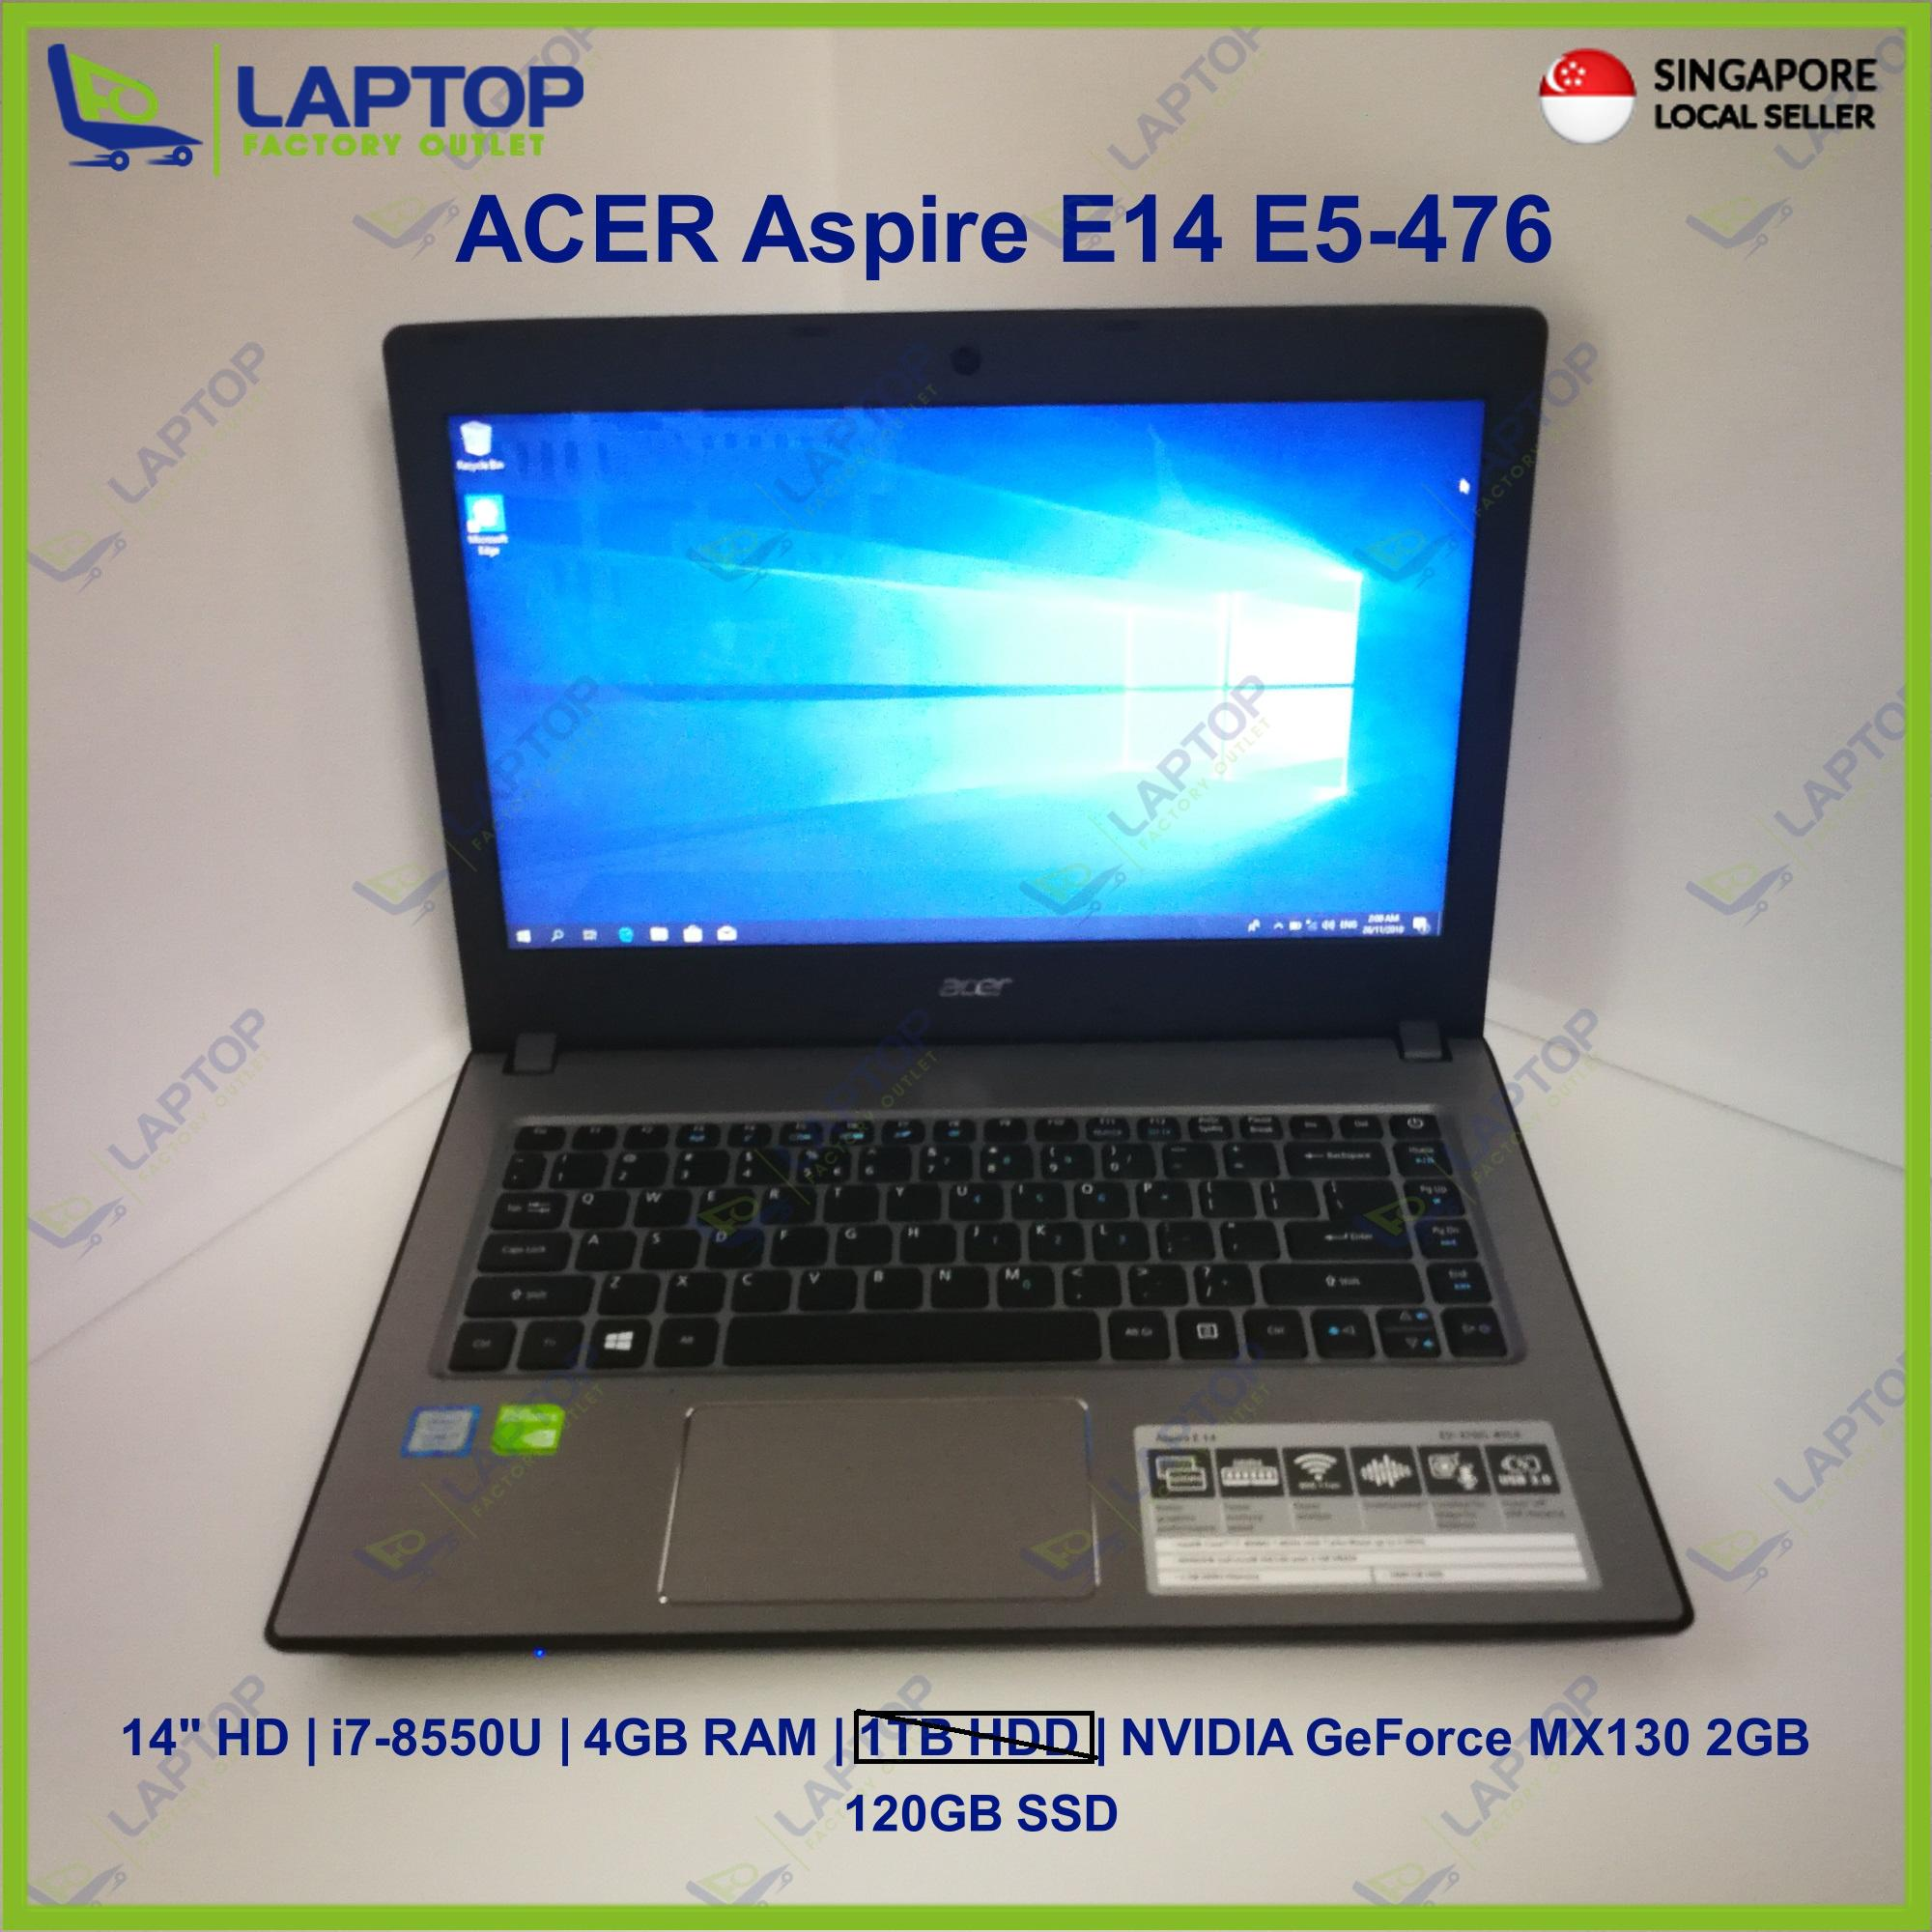 ACER Aspire E14 E5-476 (i7-8/4GB/120GB) [Premium Preowned] Refurbished